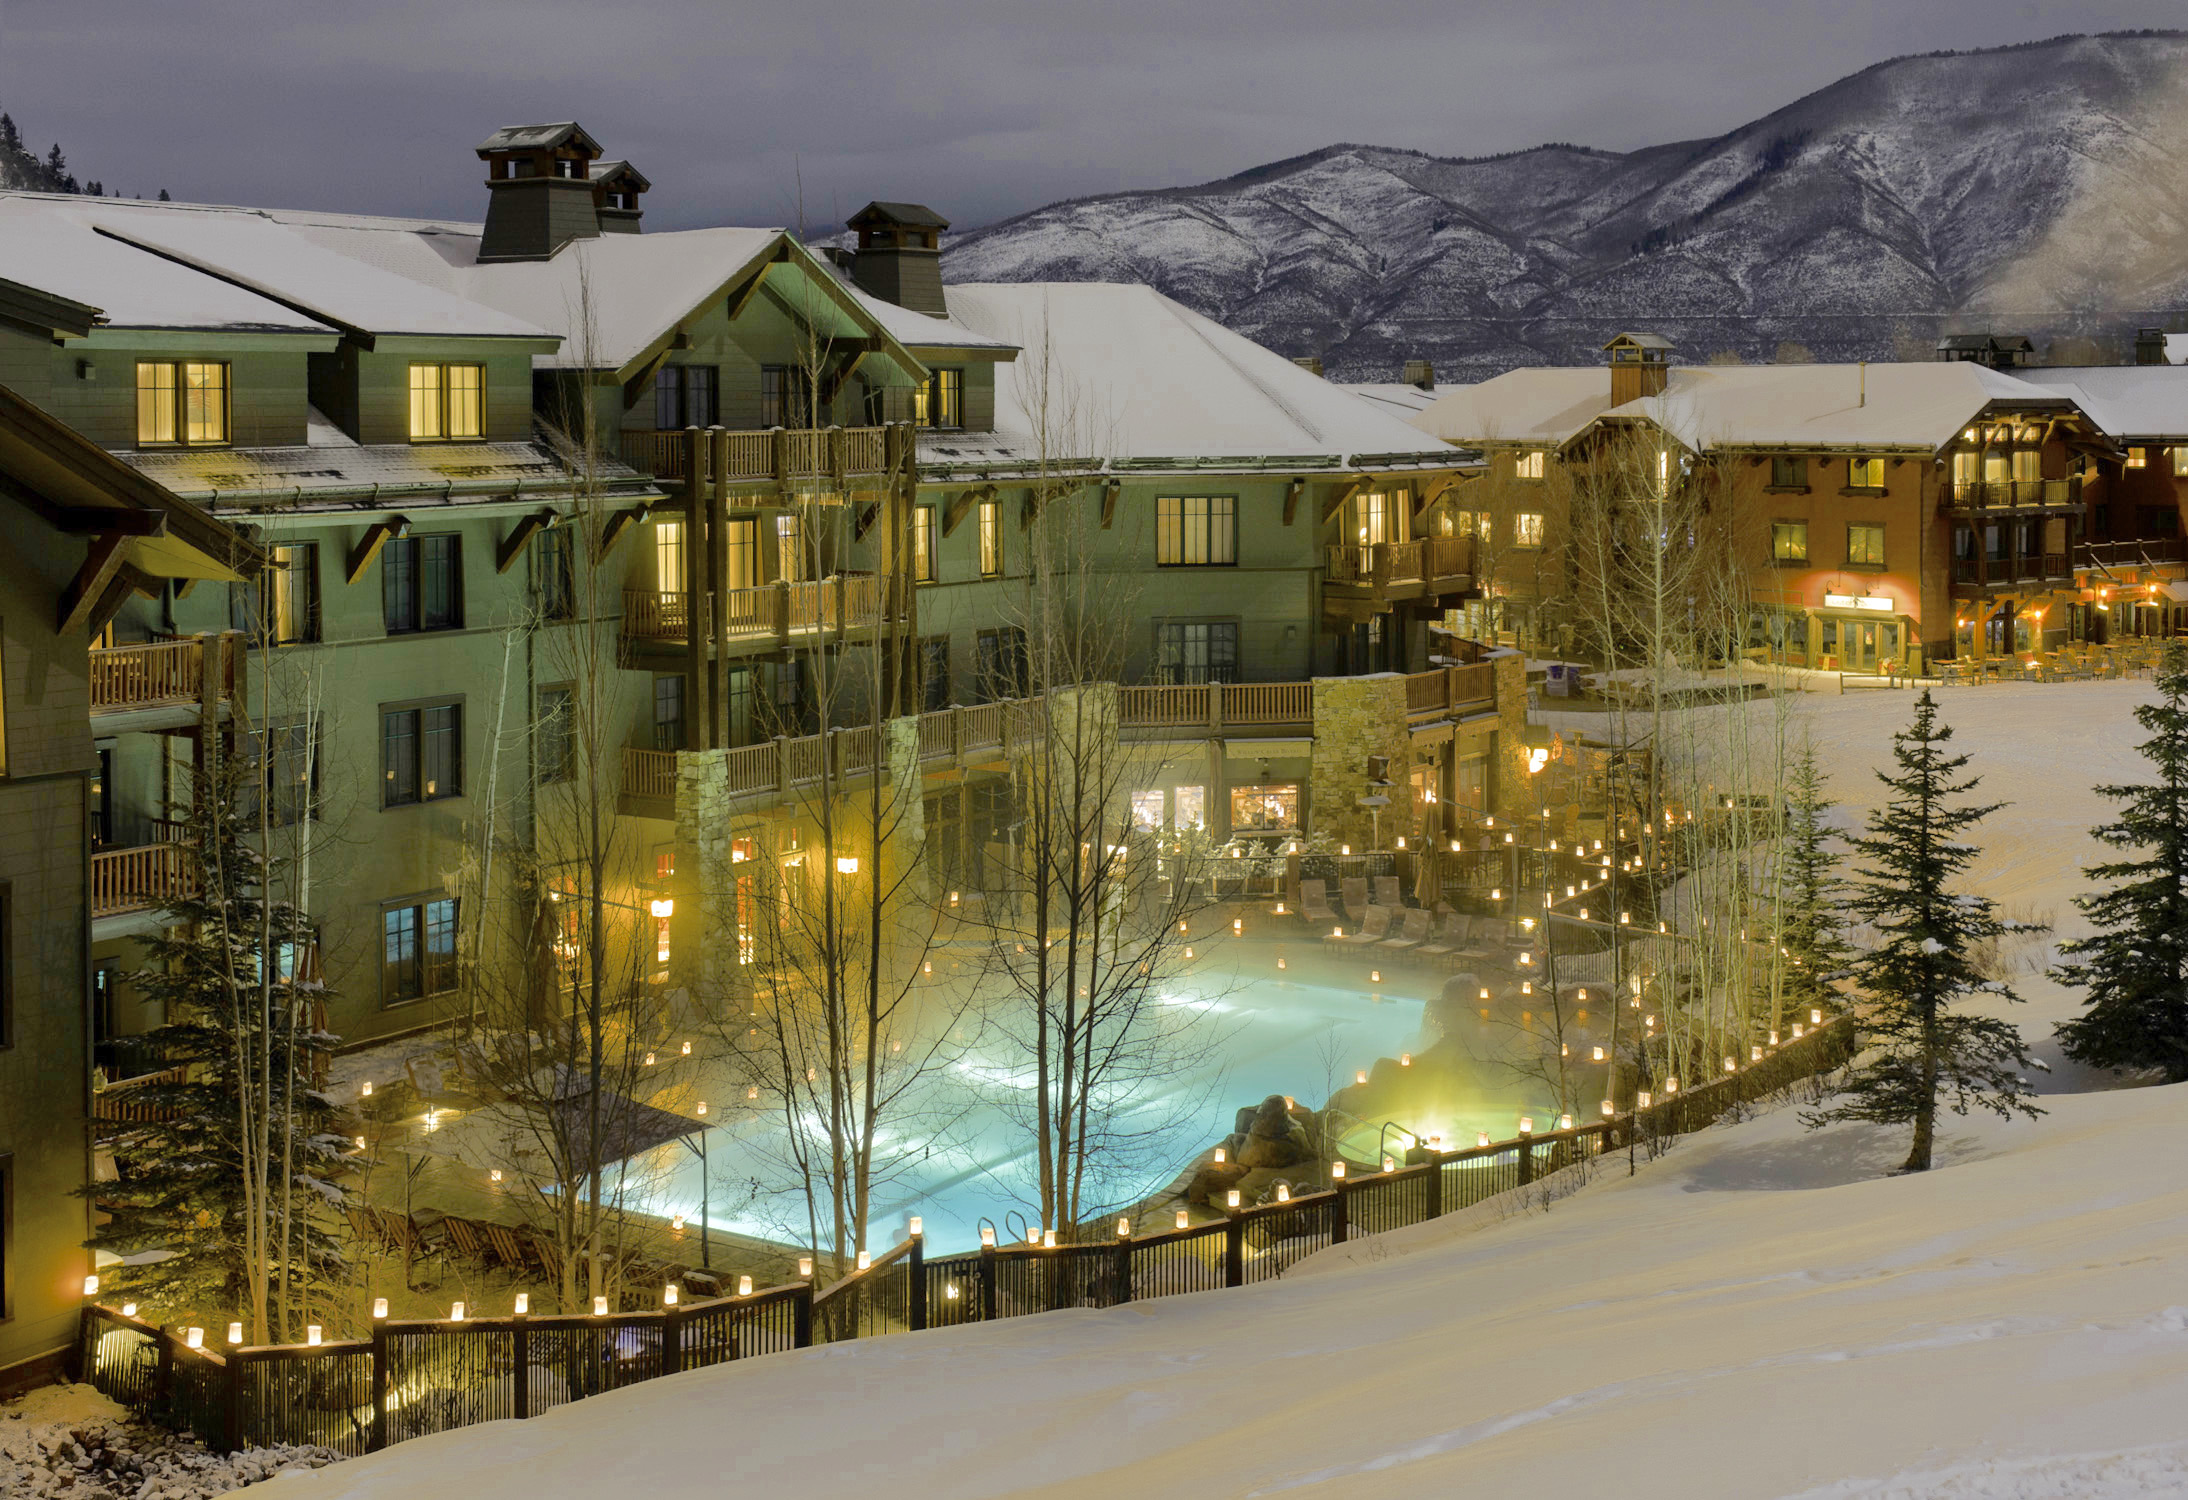 0075 Prospector Road, 8103, Summer Interest 10, Ritz-Carlton Club Fractional Condo Interest Aspen Photo 1